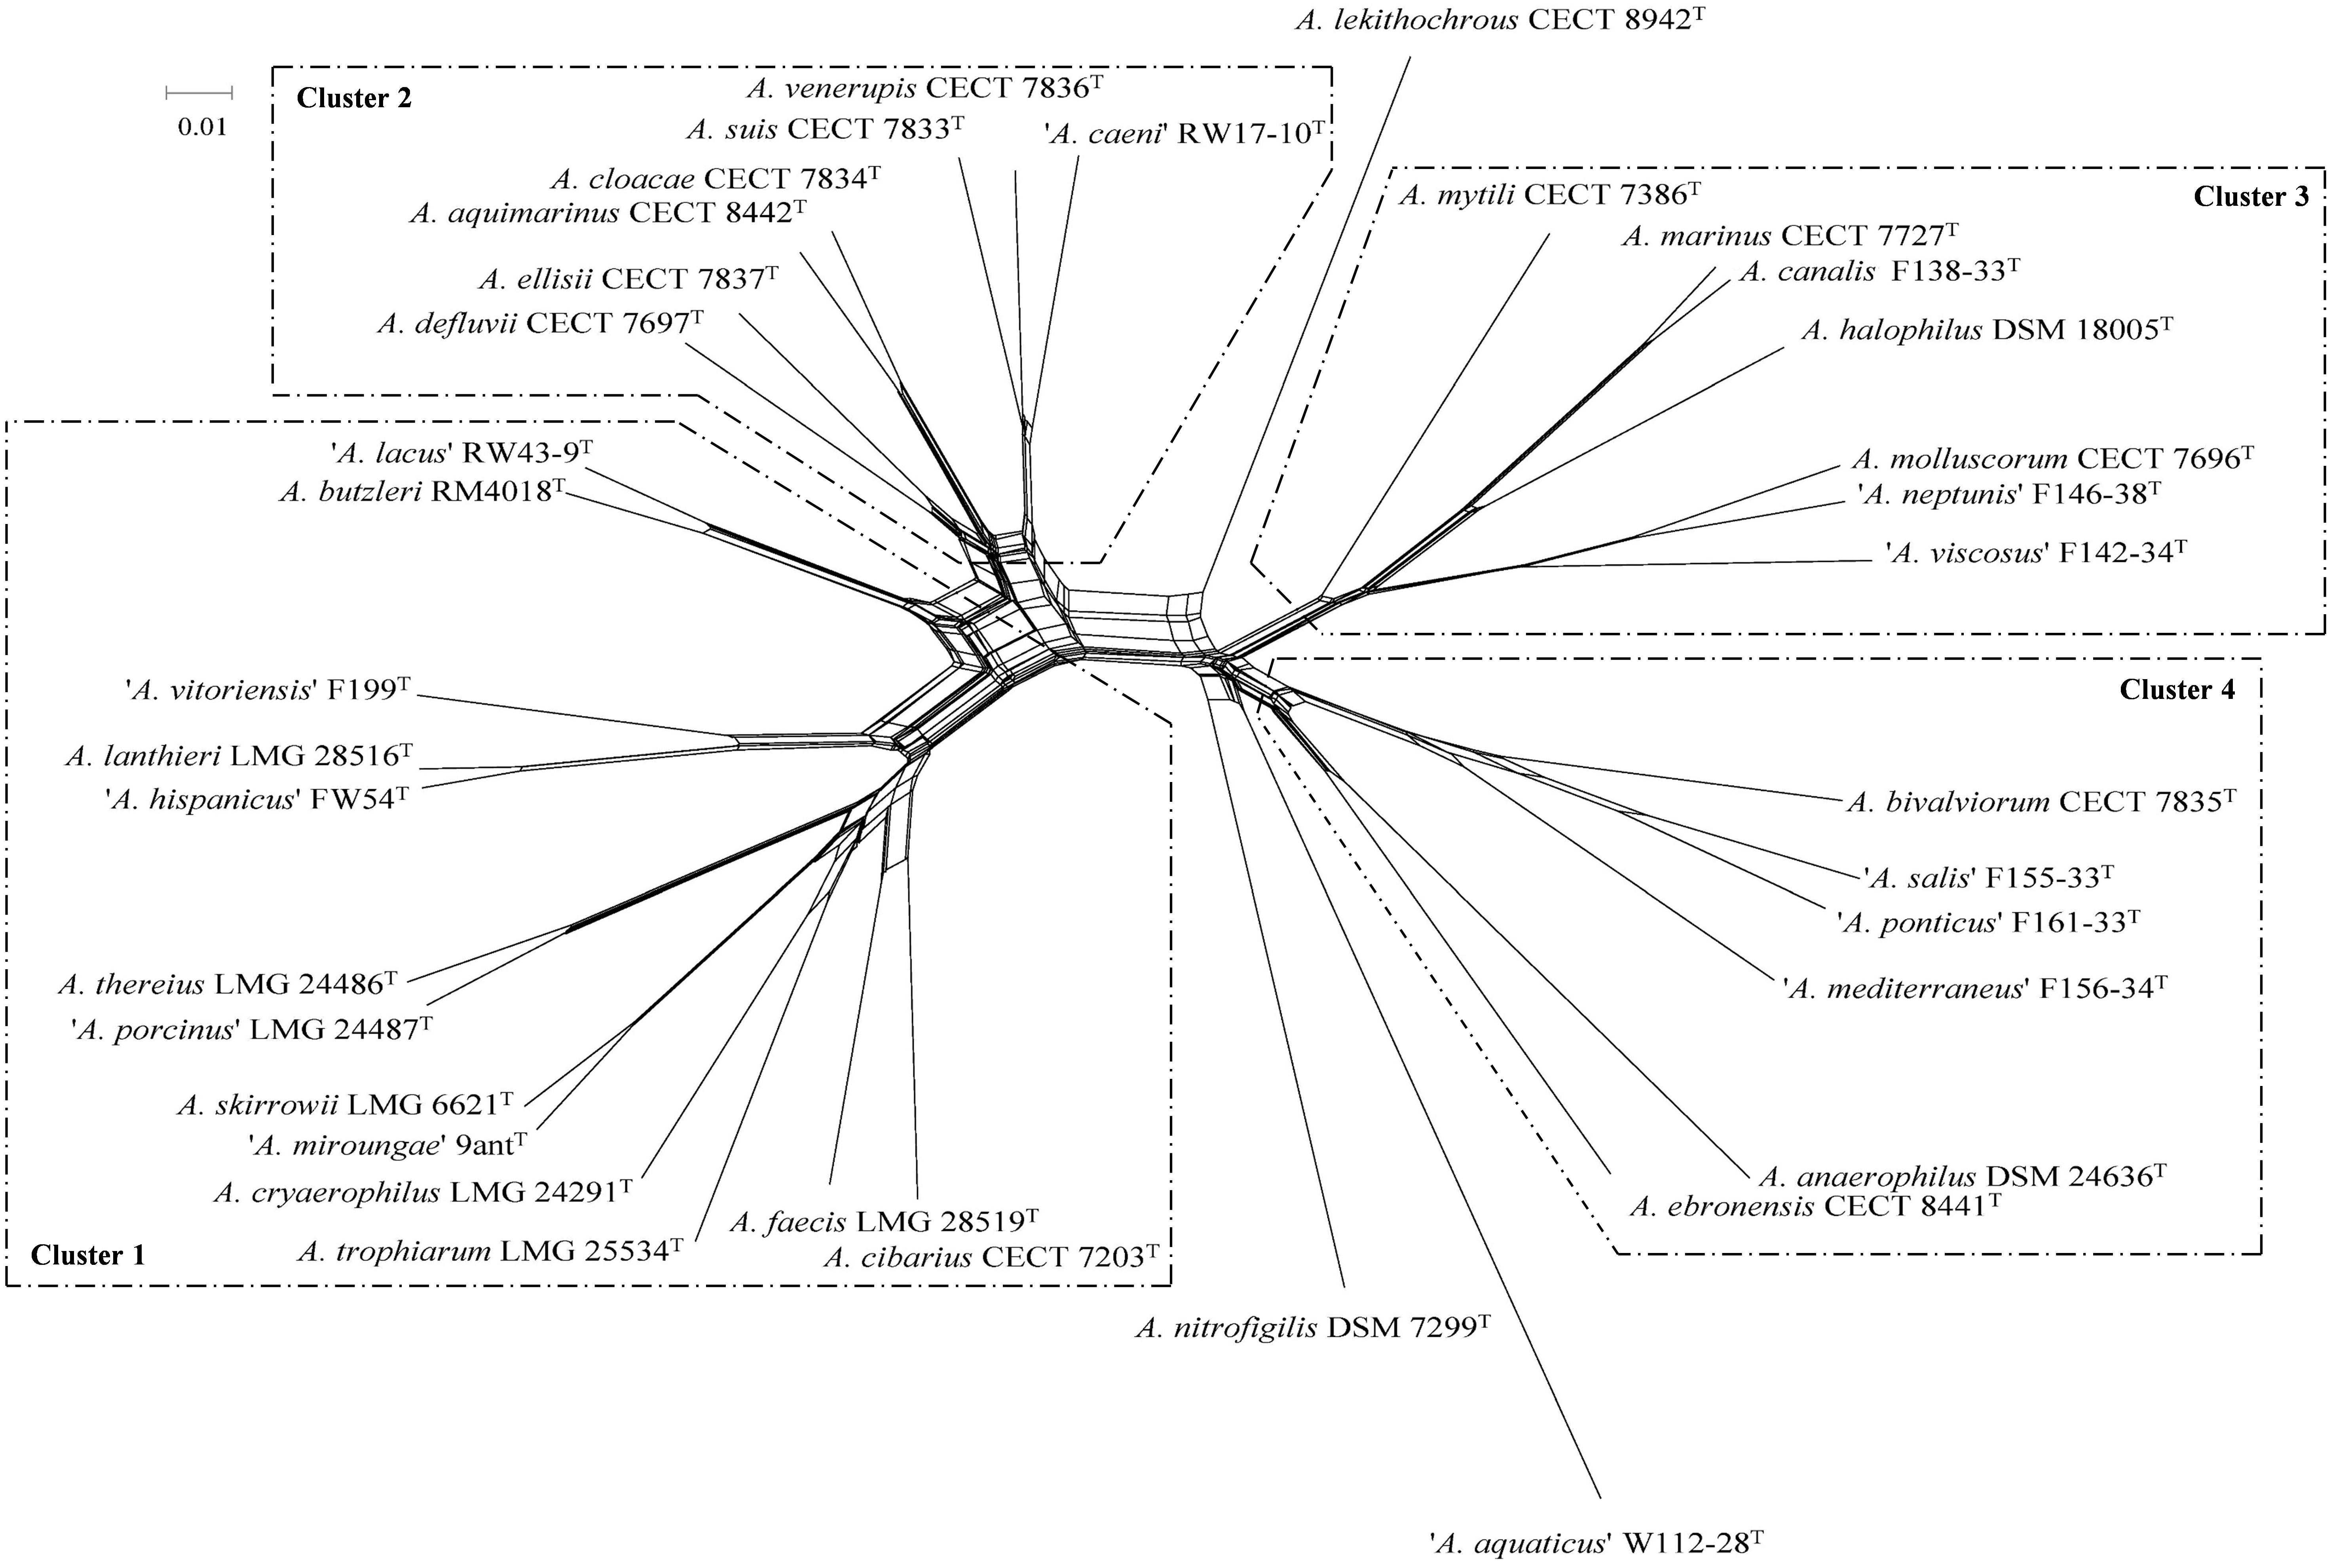 Frontiers | Revisiting the Taxonomy of the Genus Arcobacter: Getting